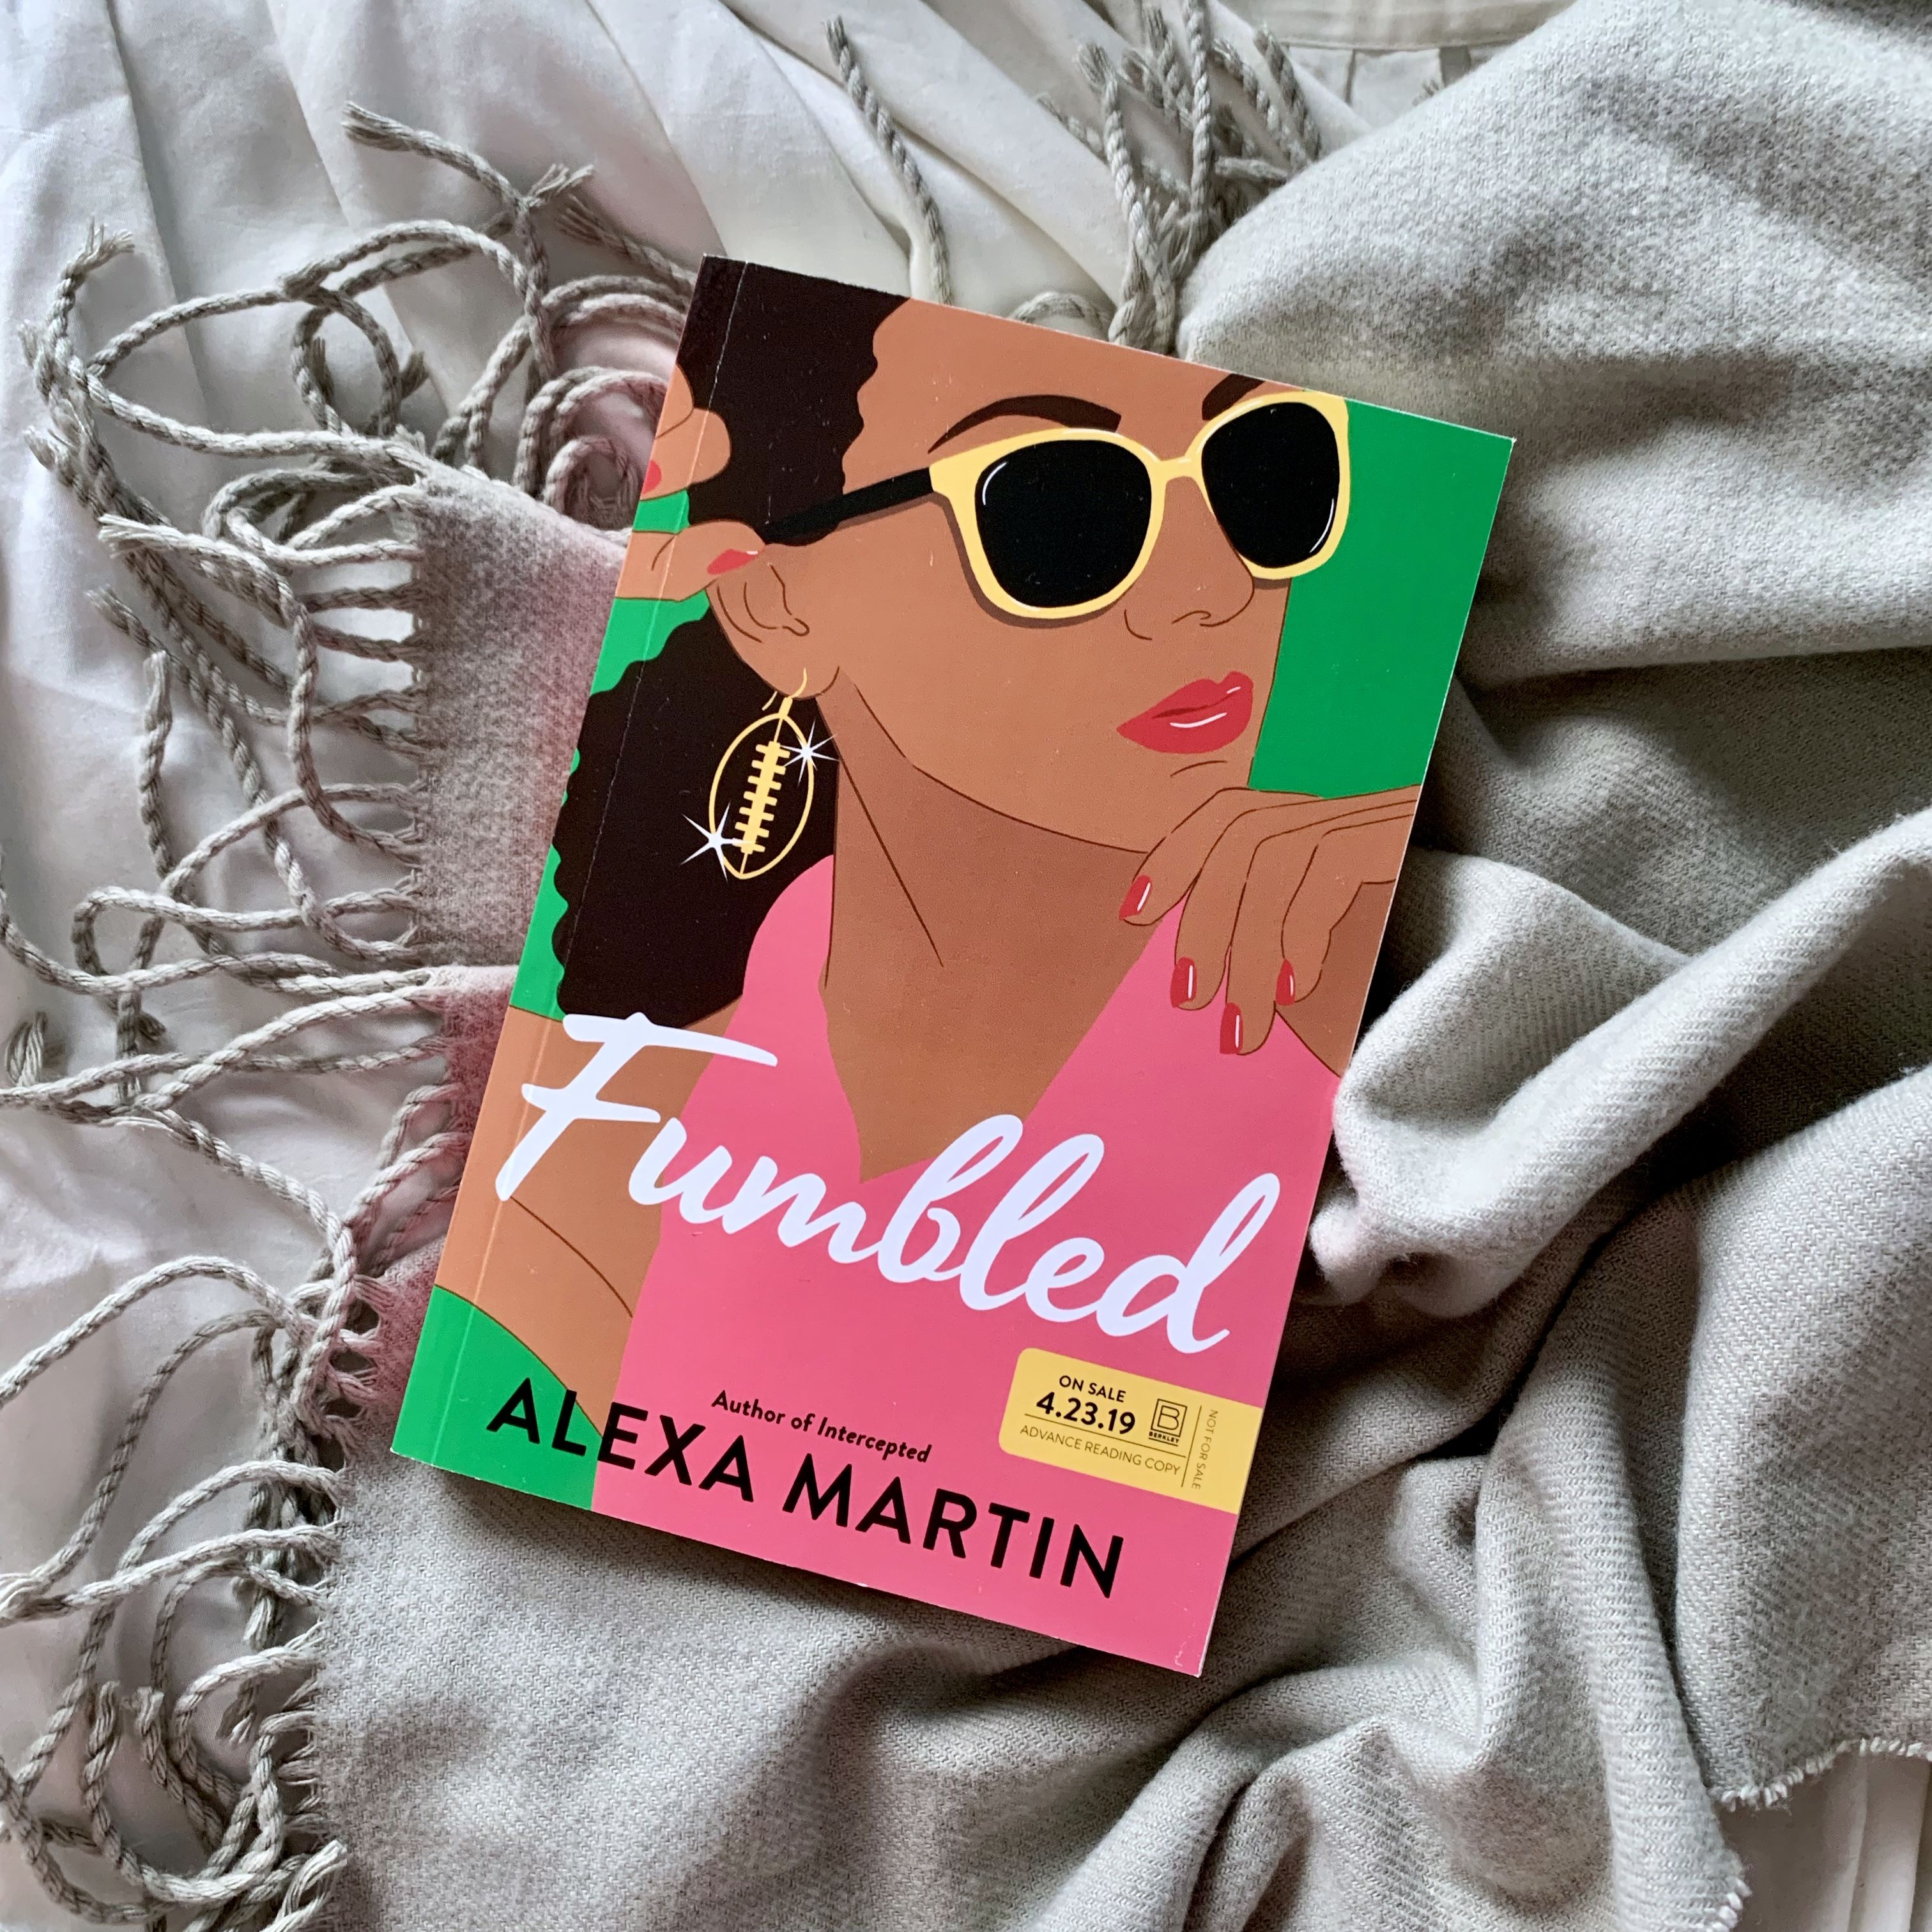 [Review] Fumbled by Alexa Martin Author, High school